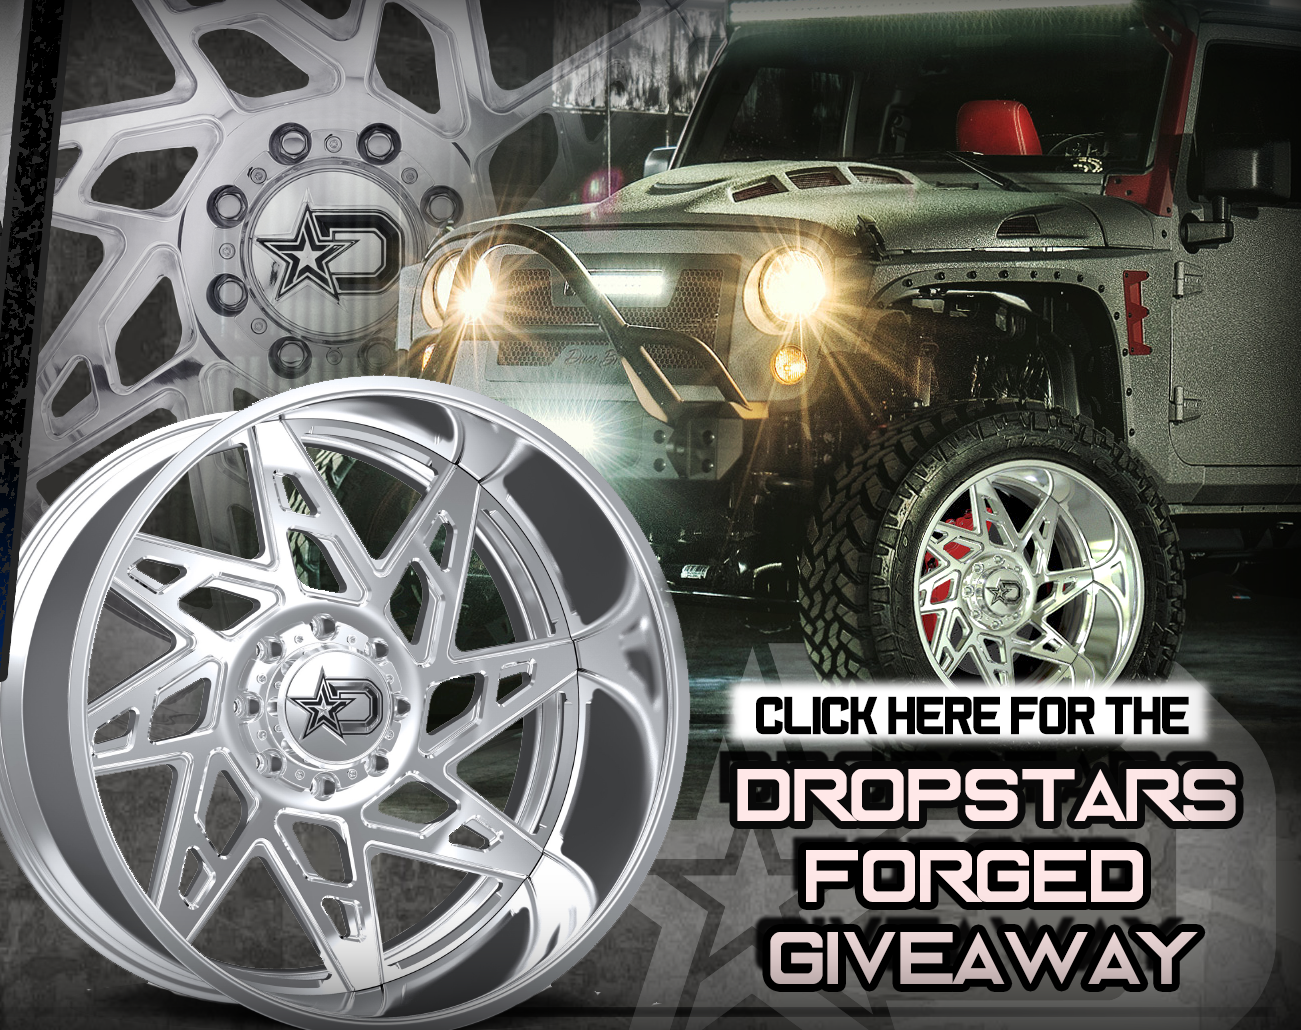 Dropstars Forged Giveaway